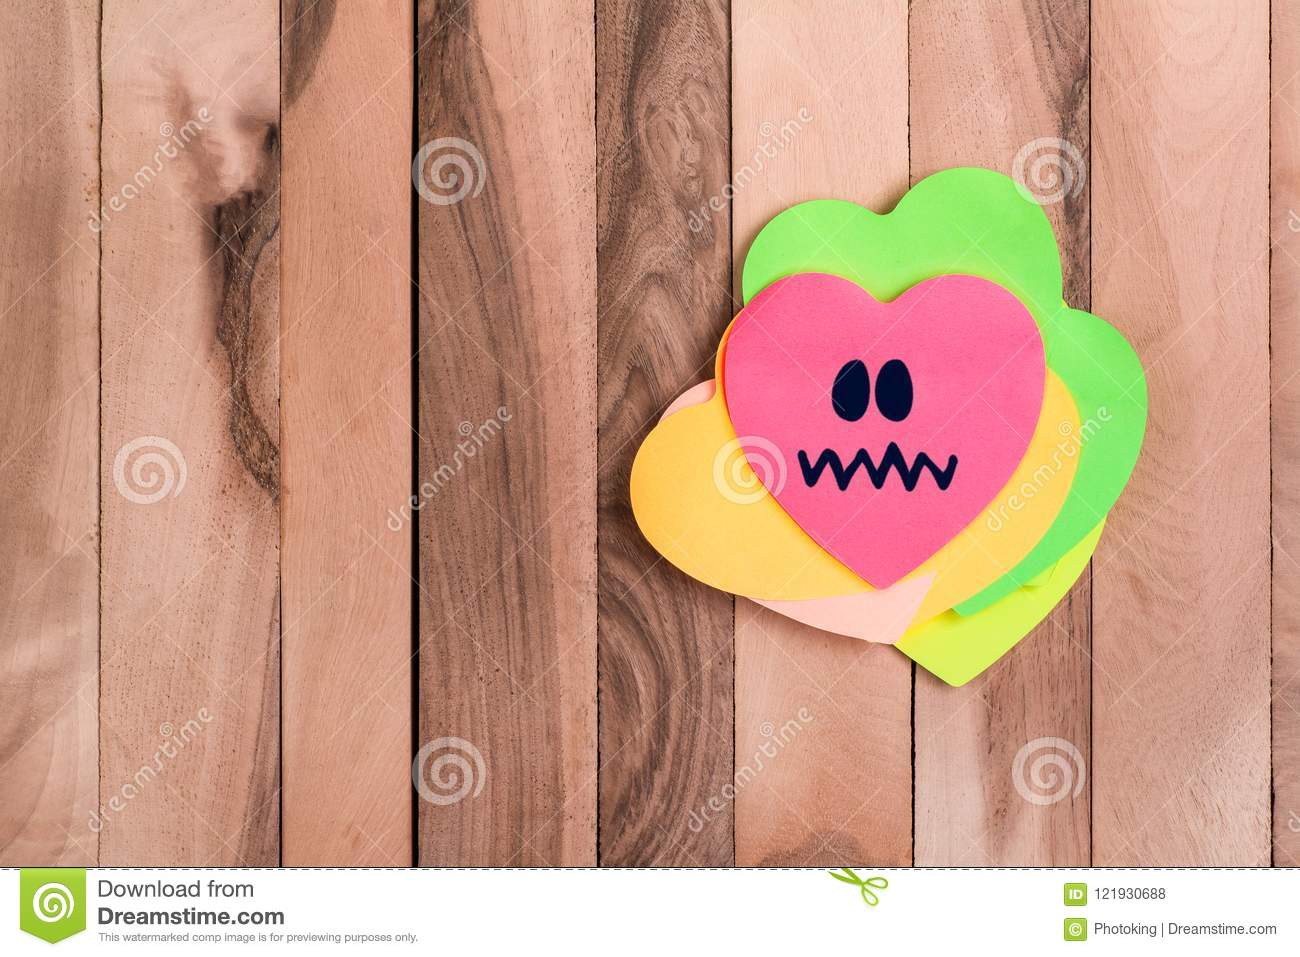 Cute Heart Bored Emoji Stock Photo Image Of Decoration